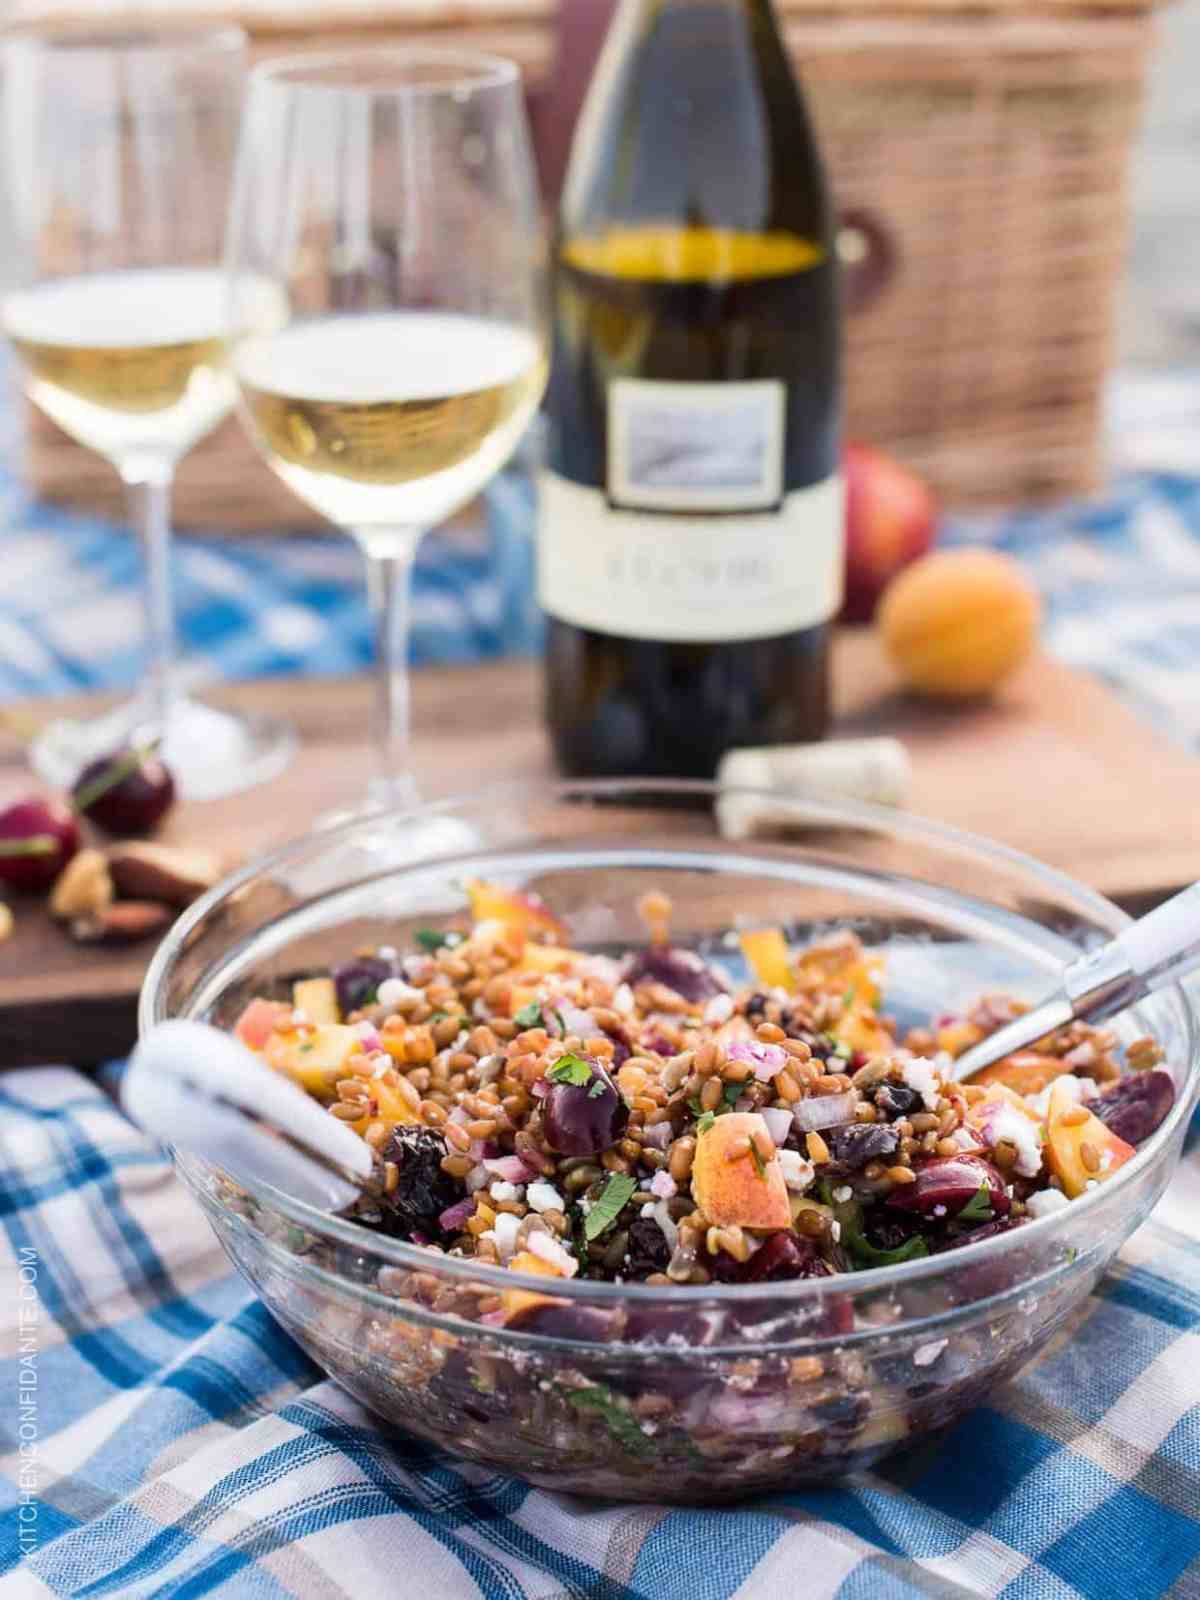 Summer Wheat Berry Salad with Stone Fruits and Goat Cheese has sweet cherries and nectarines and is picnic ready! Pair it with a glass of wine for your next summer adventure! #YouKnowJLohr #ad